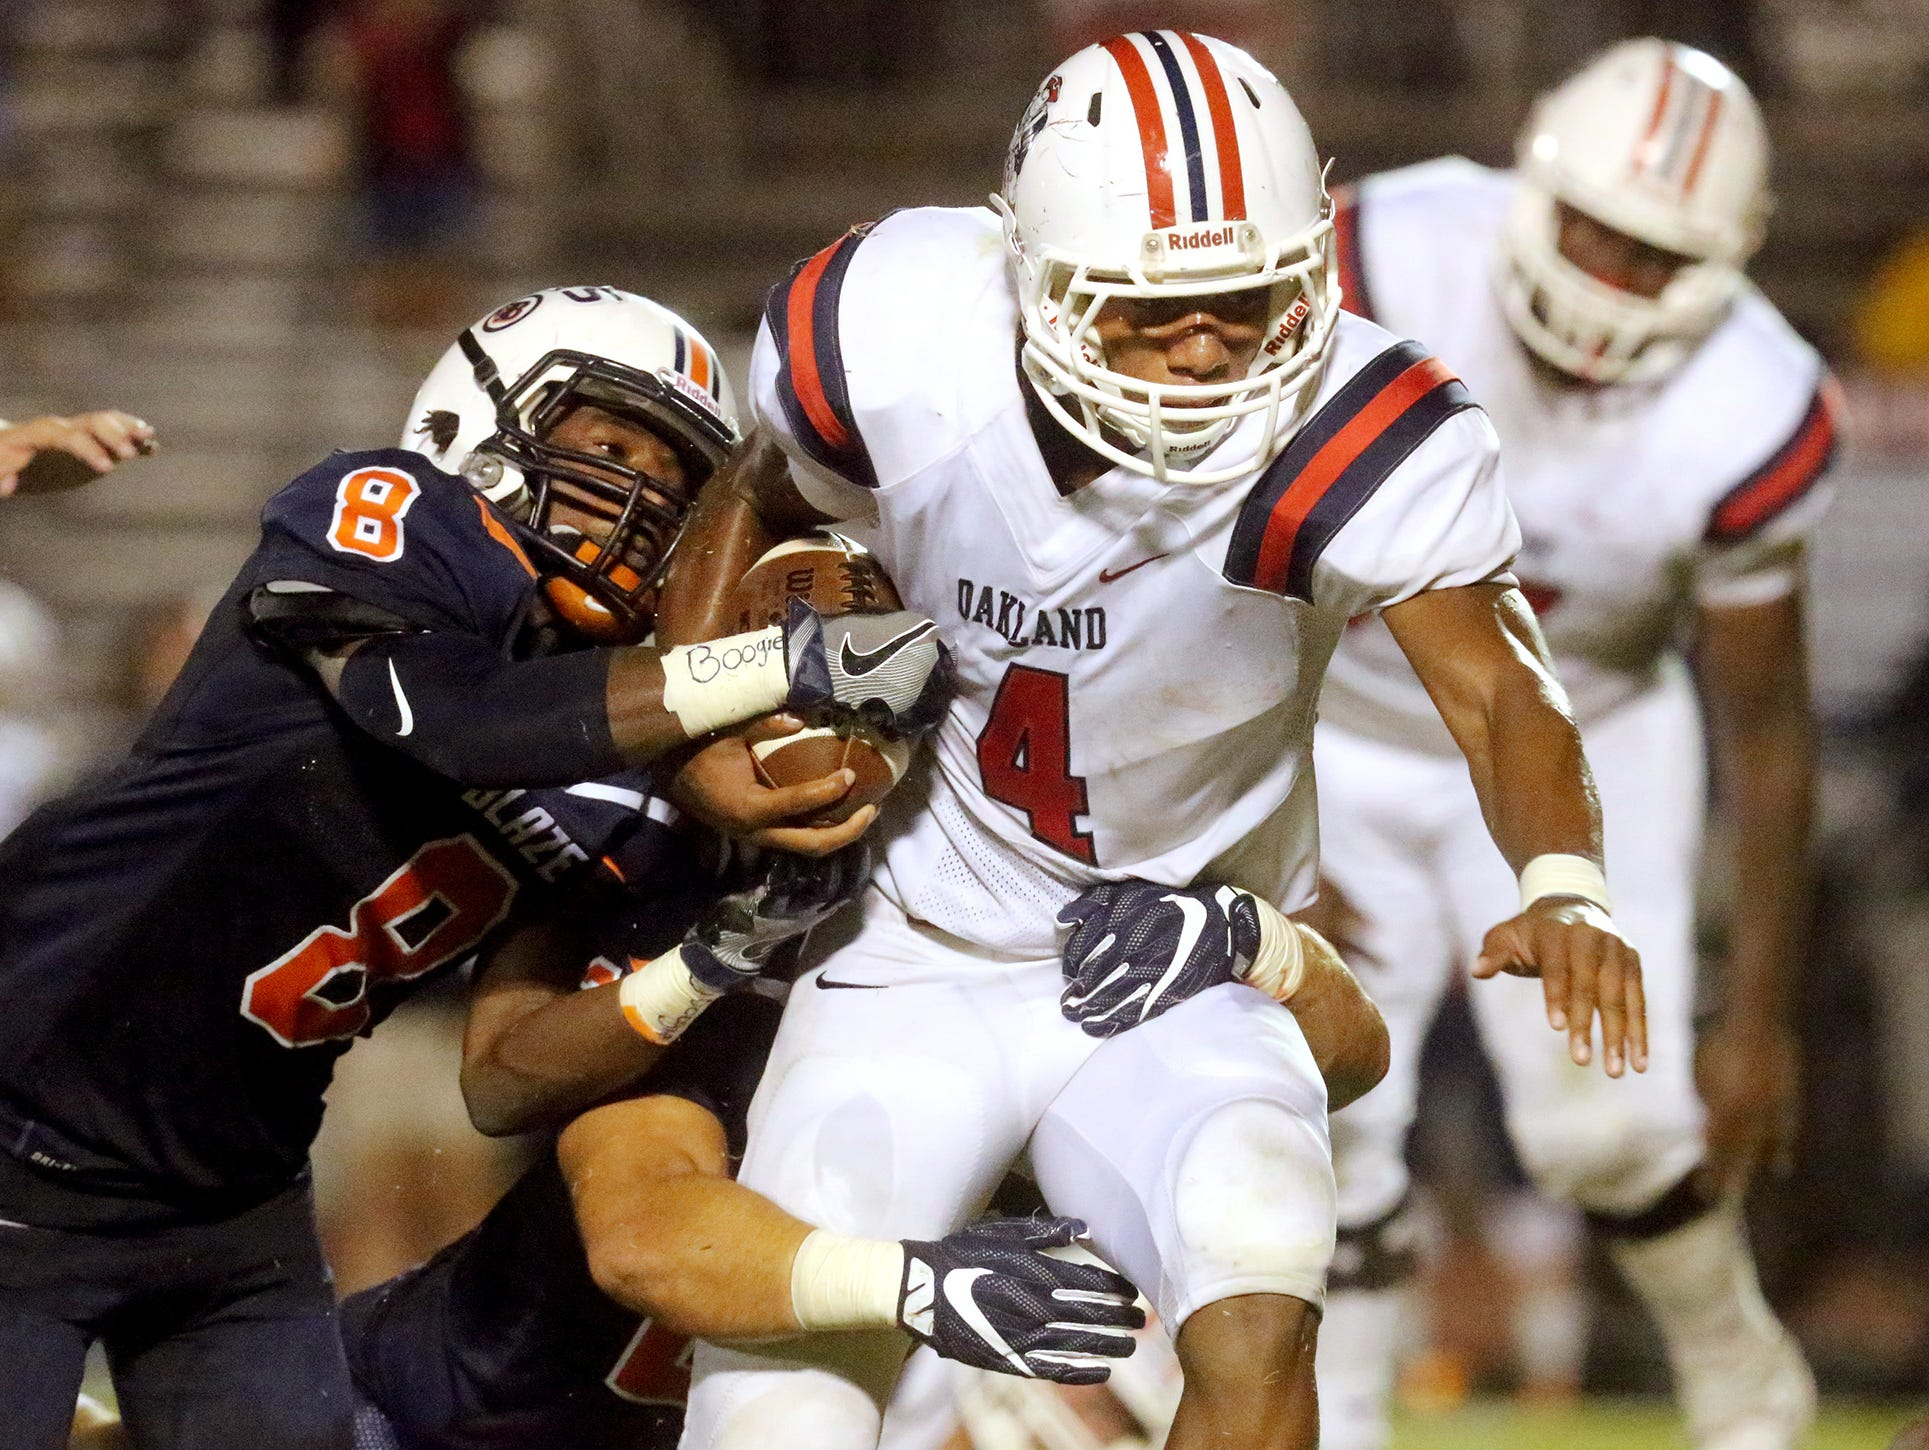 Oakland's Lazarius Patterson (4) runs the ball as Blackman's Jamis Carson (8) and Anthony Ochoa (22) tackle Patterson during the game on Friday, Sept. 16, 2016, at Blackman.